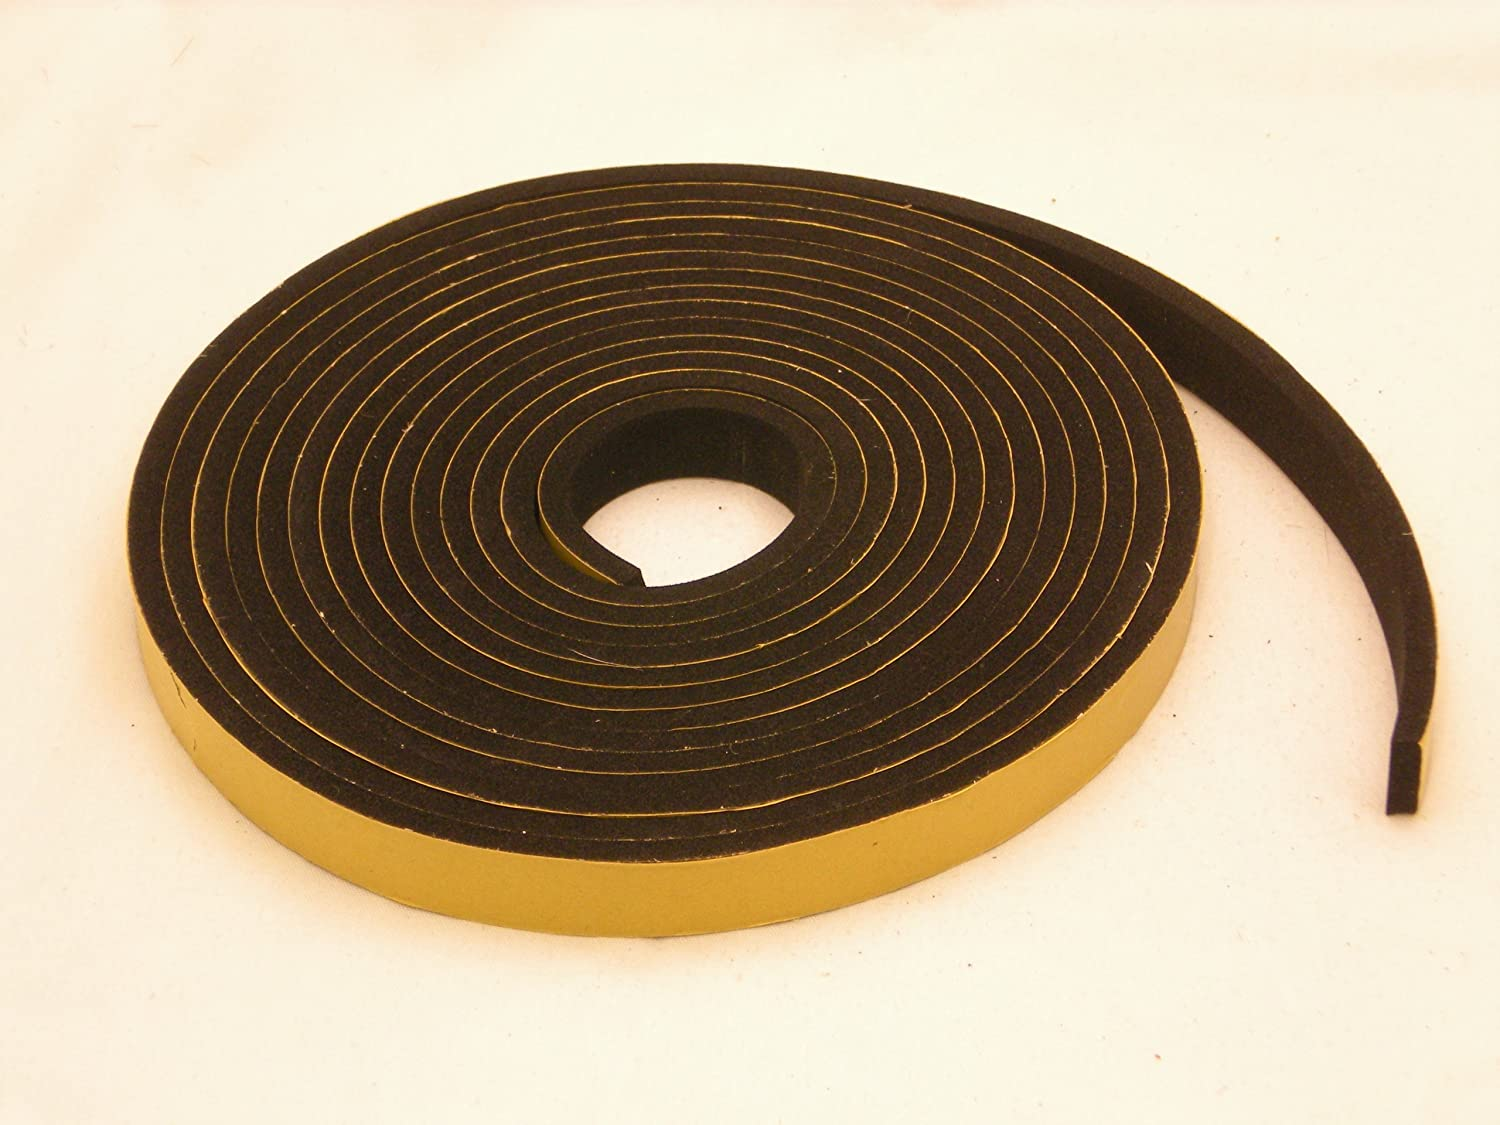 NEOPRENE RUBBER Self Adhesive Strip 3 4 wide x 5 16 thick x 16 feet long